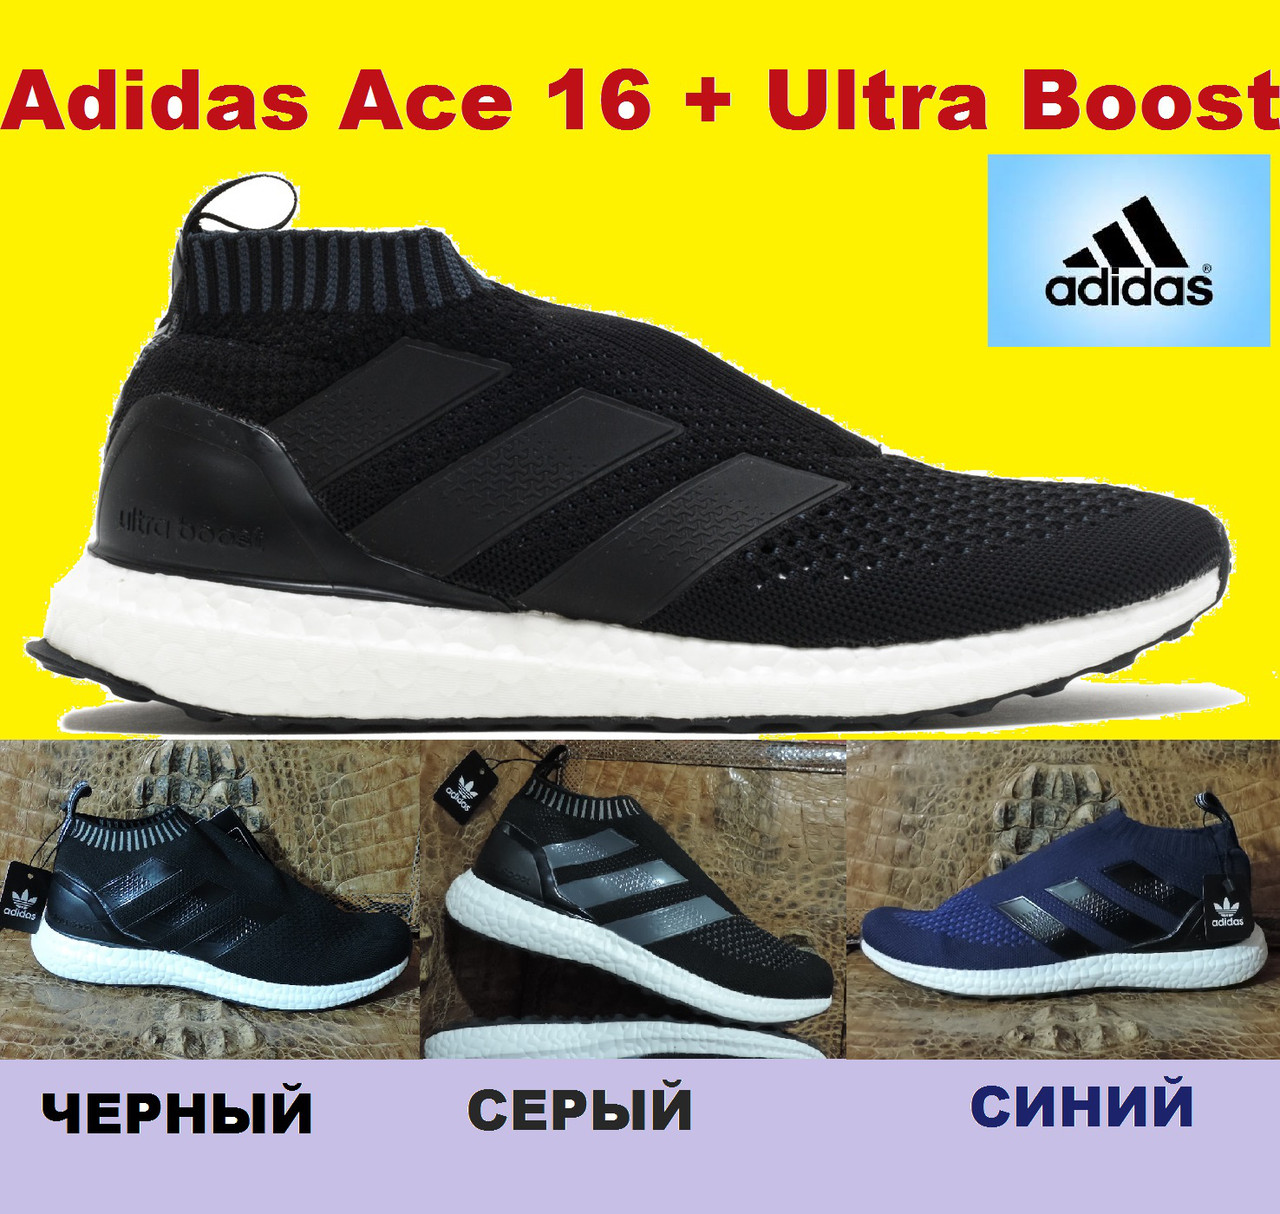 0d36699a Мужские кроссовки Adidas ACE 16 Purecontrol Ultra Boost, реплика ...